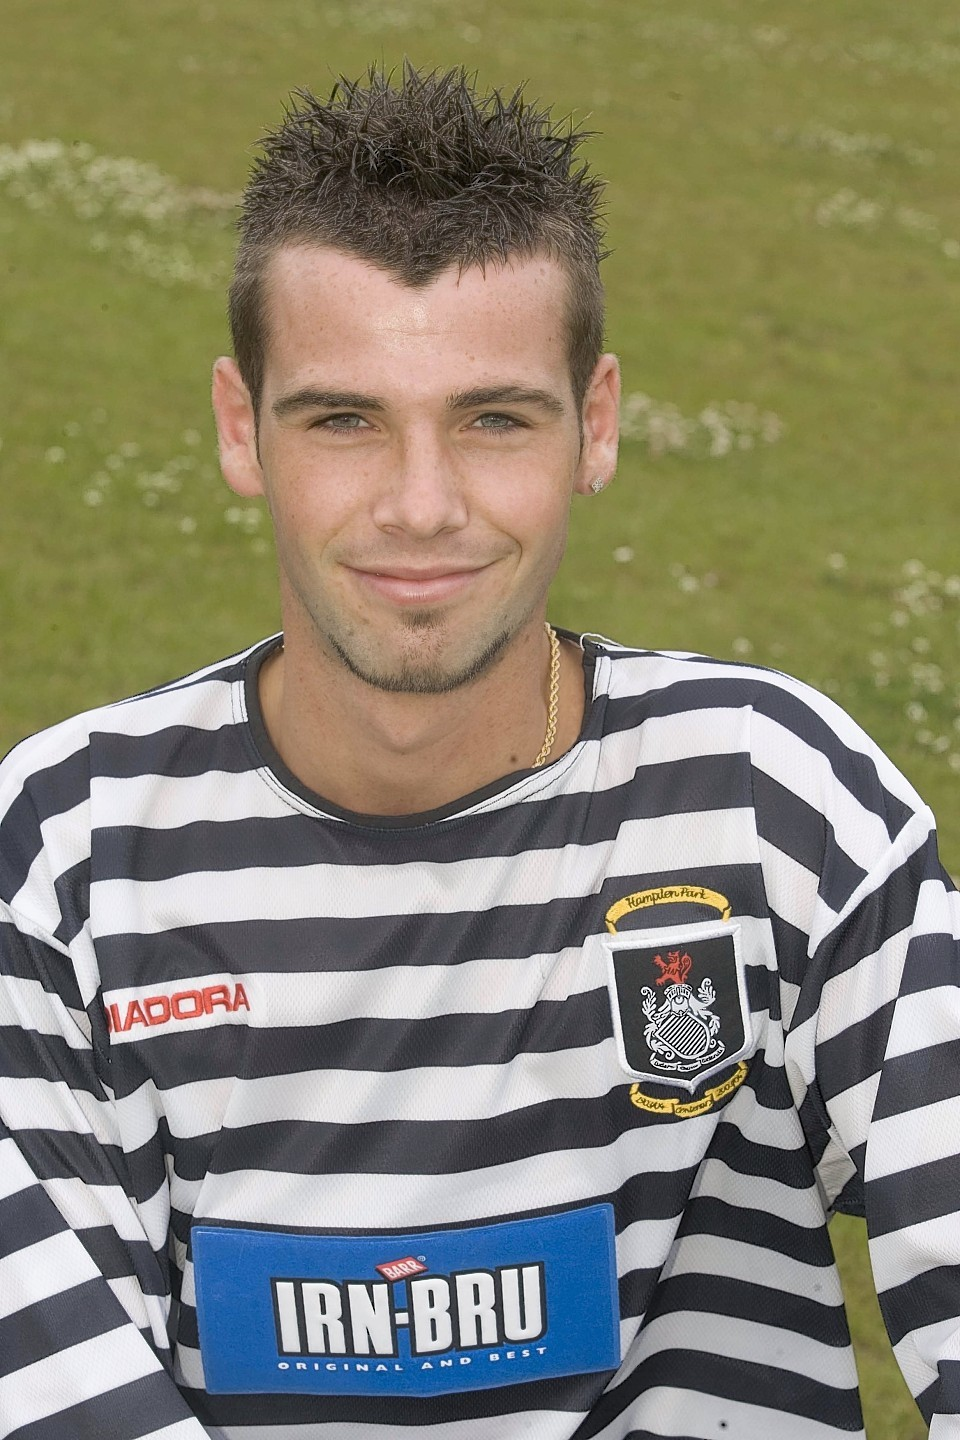 Kettlewell broke into the Queen's Park first team when he was just 18